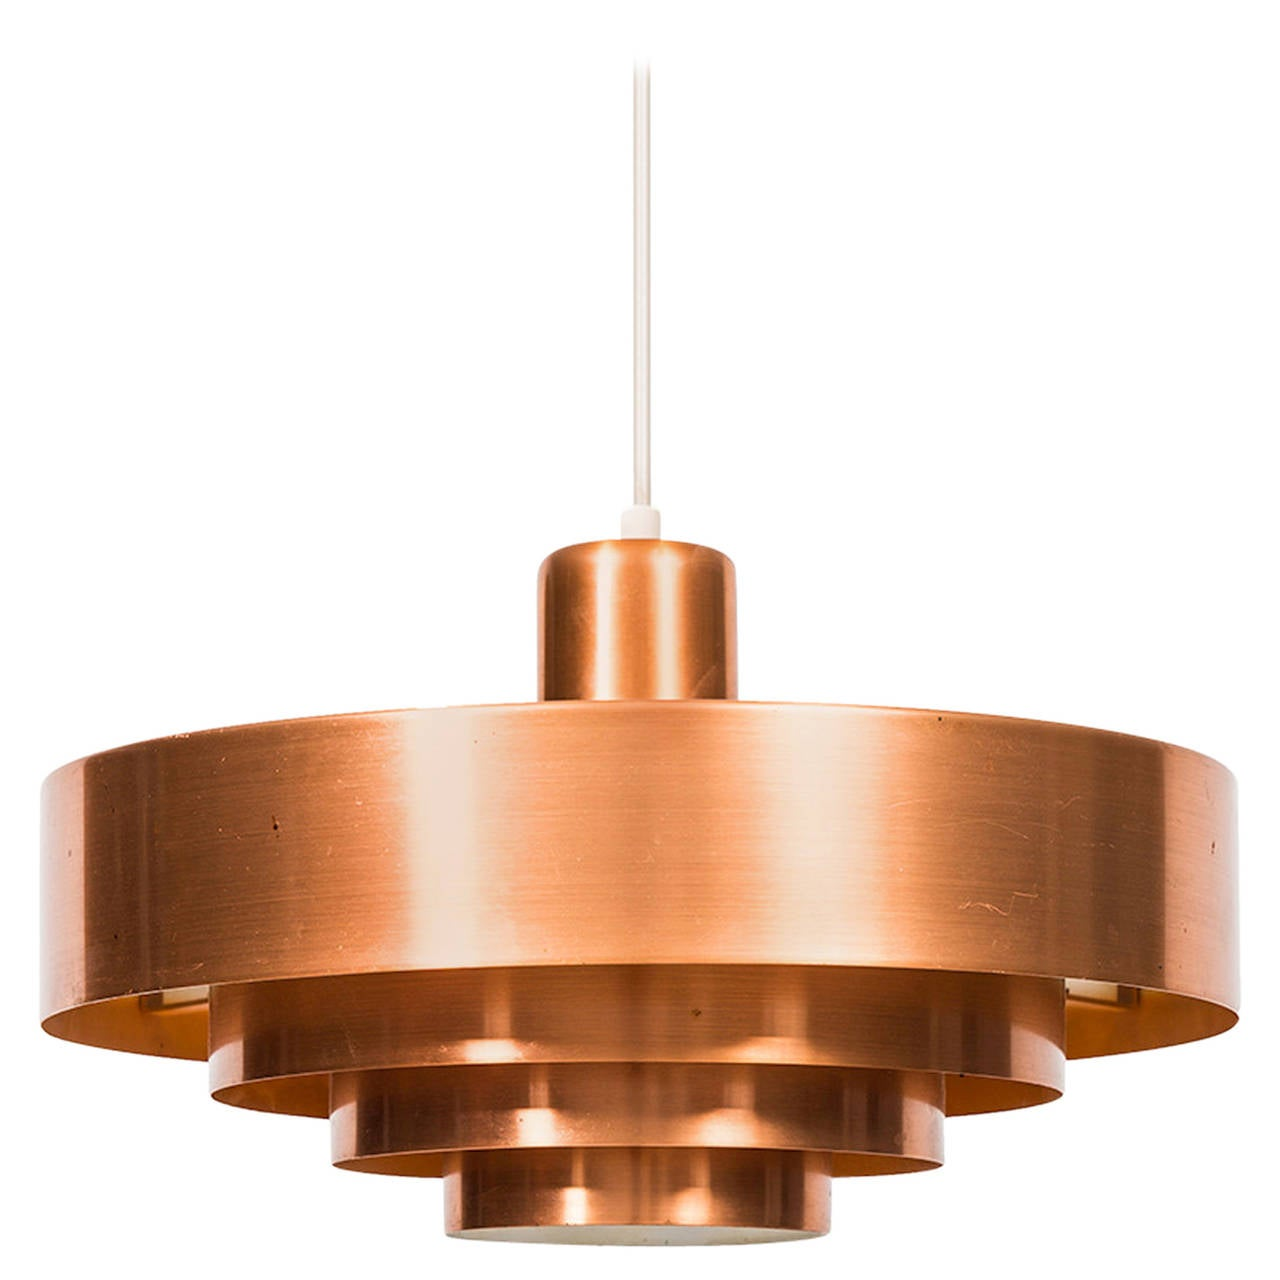 Jo Hammerborg Ceiling Lamp Model Roulet by Fog & Mørup in Denmark